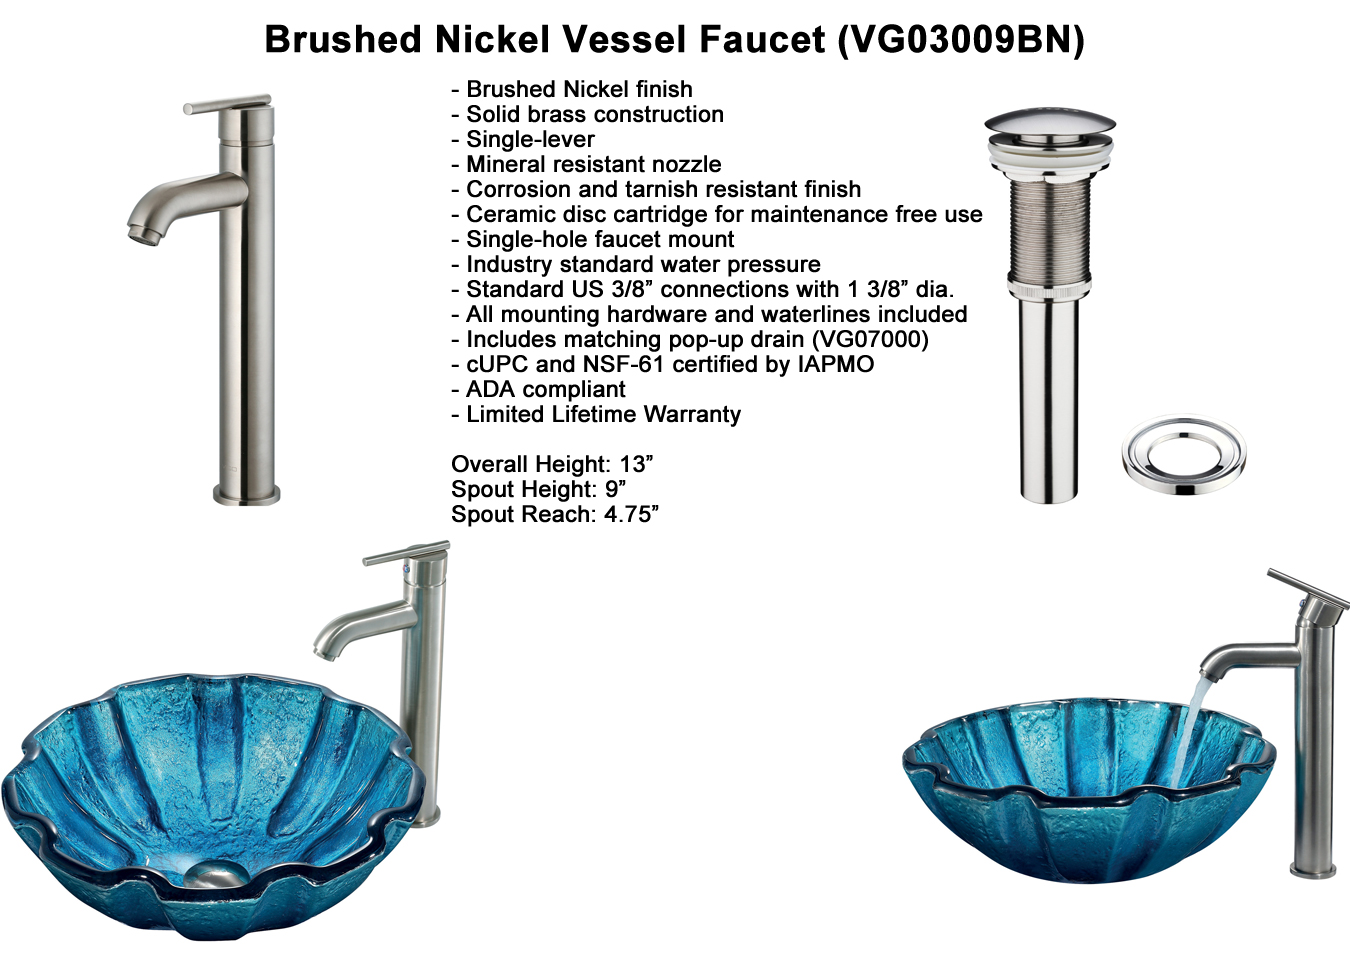 Faucet Option 3: Brushed Nickel Vessel Faucet (VGT160)